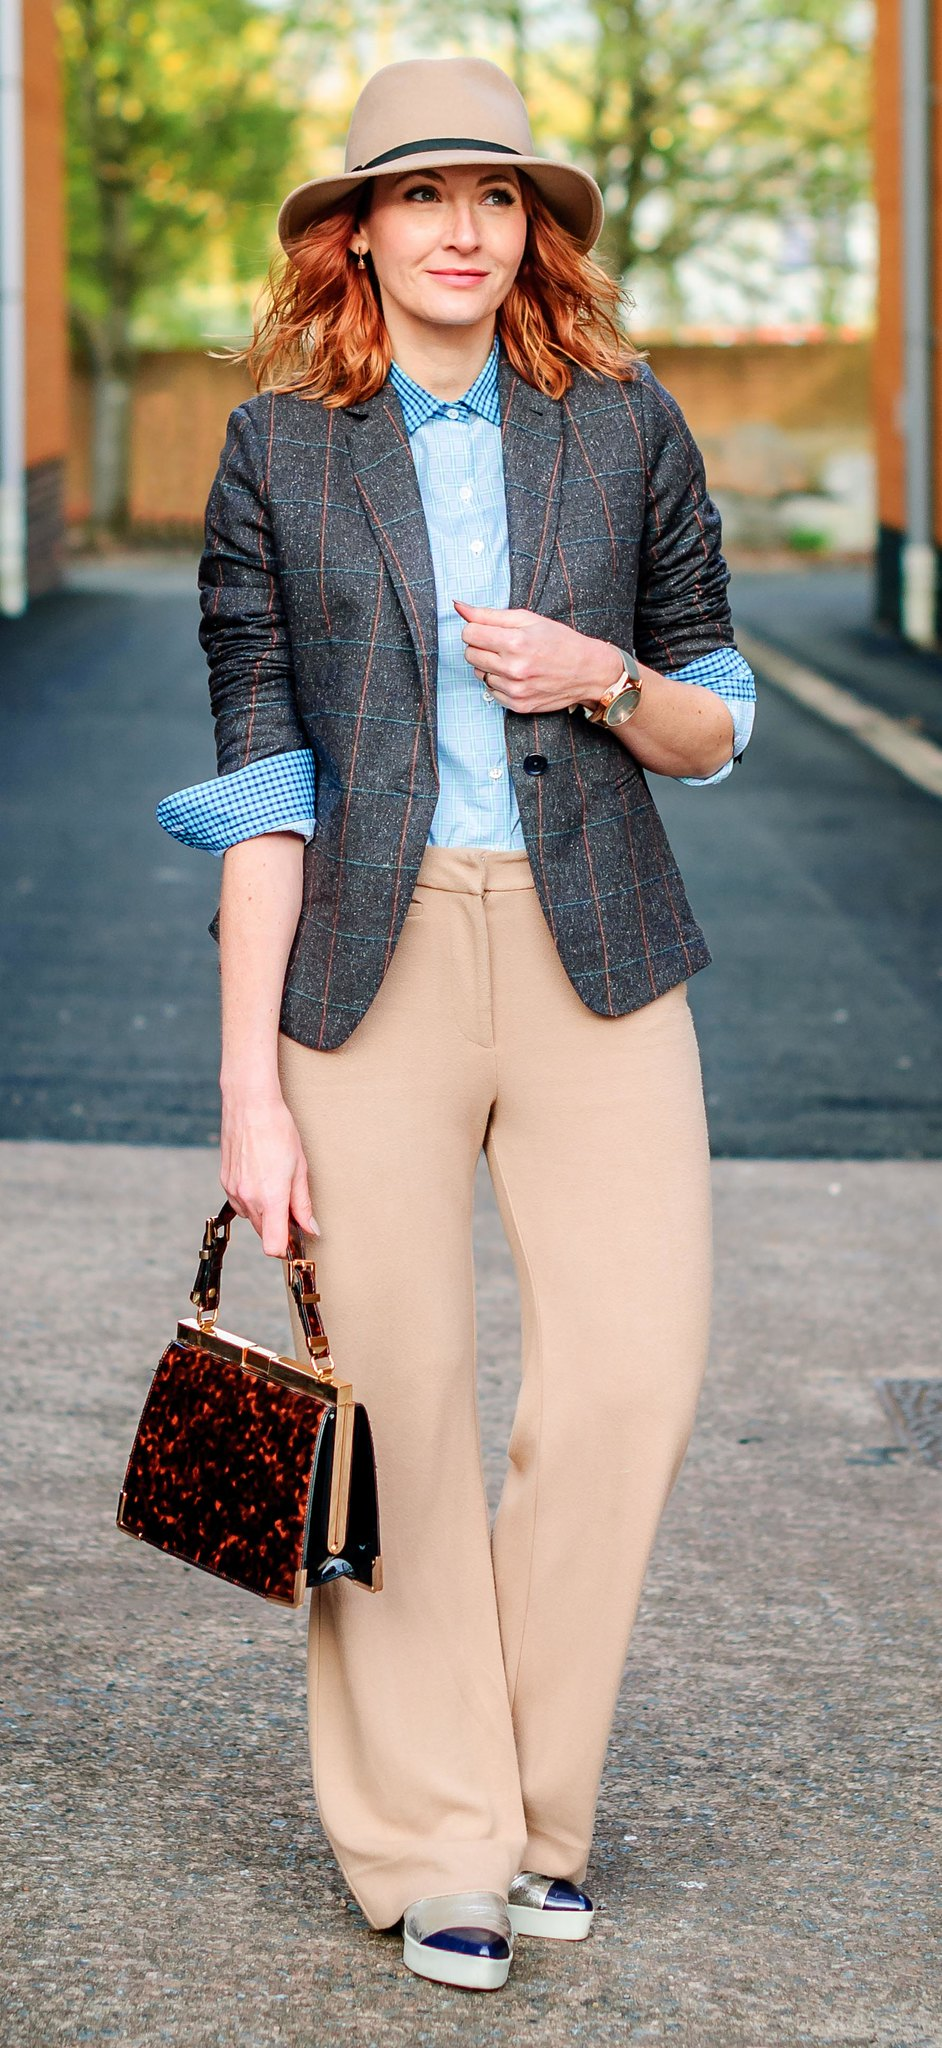 Smart British tailoring by Arthur Shirtley: Check shirt  tweed silk blazer  camel wide leg trousers  silver slip on sneakers  tortoiseshell bag  camel fedora | Not Dressed As Lamb, over 40 style